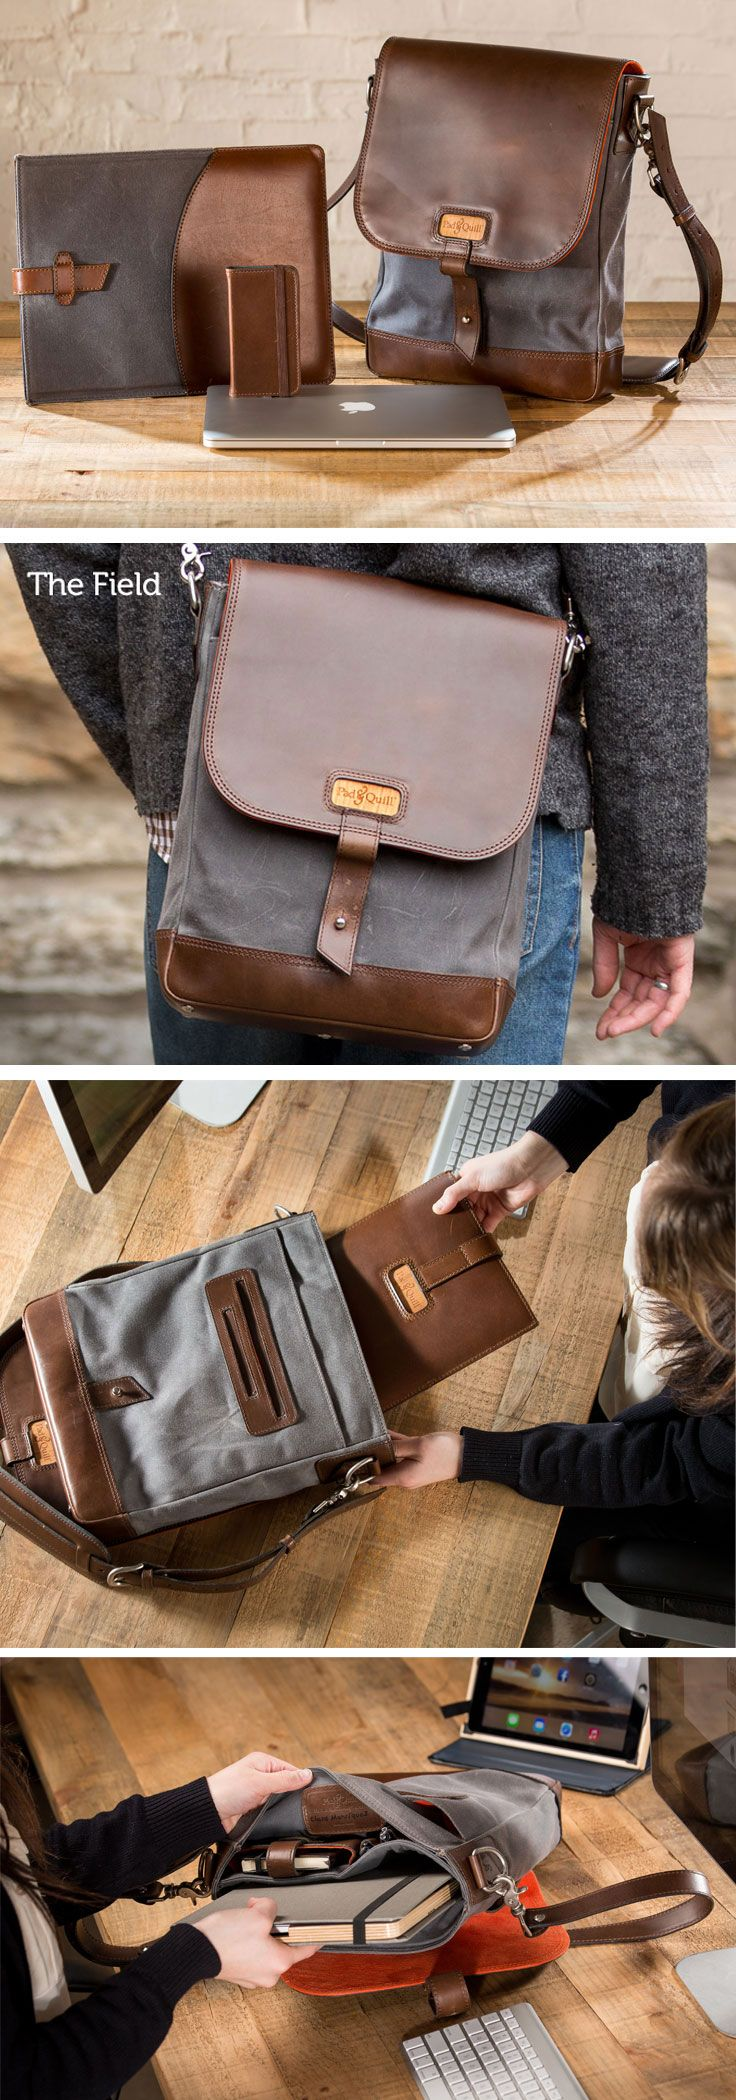 The Pad & Quill Field Bag is a vertical design that has tons of pockets for all your gear. Amazing storage with such slim luxury. Handmade with custom American hide full grain leathers, 24 oz luxury twill waxed canvas and nylon UV resistant stitching thats used to sew parachutes. Yep...parachutes. Every Bag has a cherry wood panel with our mark laser etched in the center and inside you'll find a signature.  - See more at: http://www.padandquill.com/leather-bags/the-field-bag.html